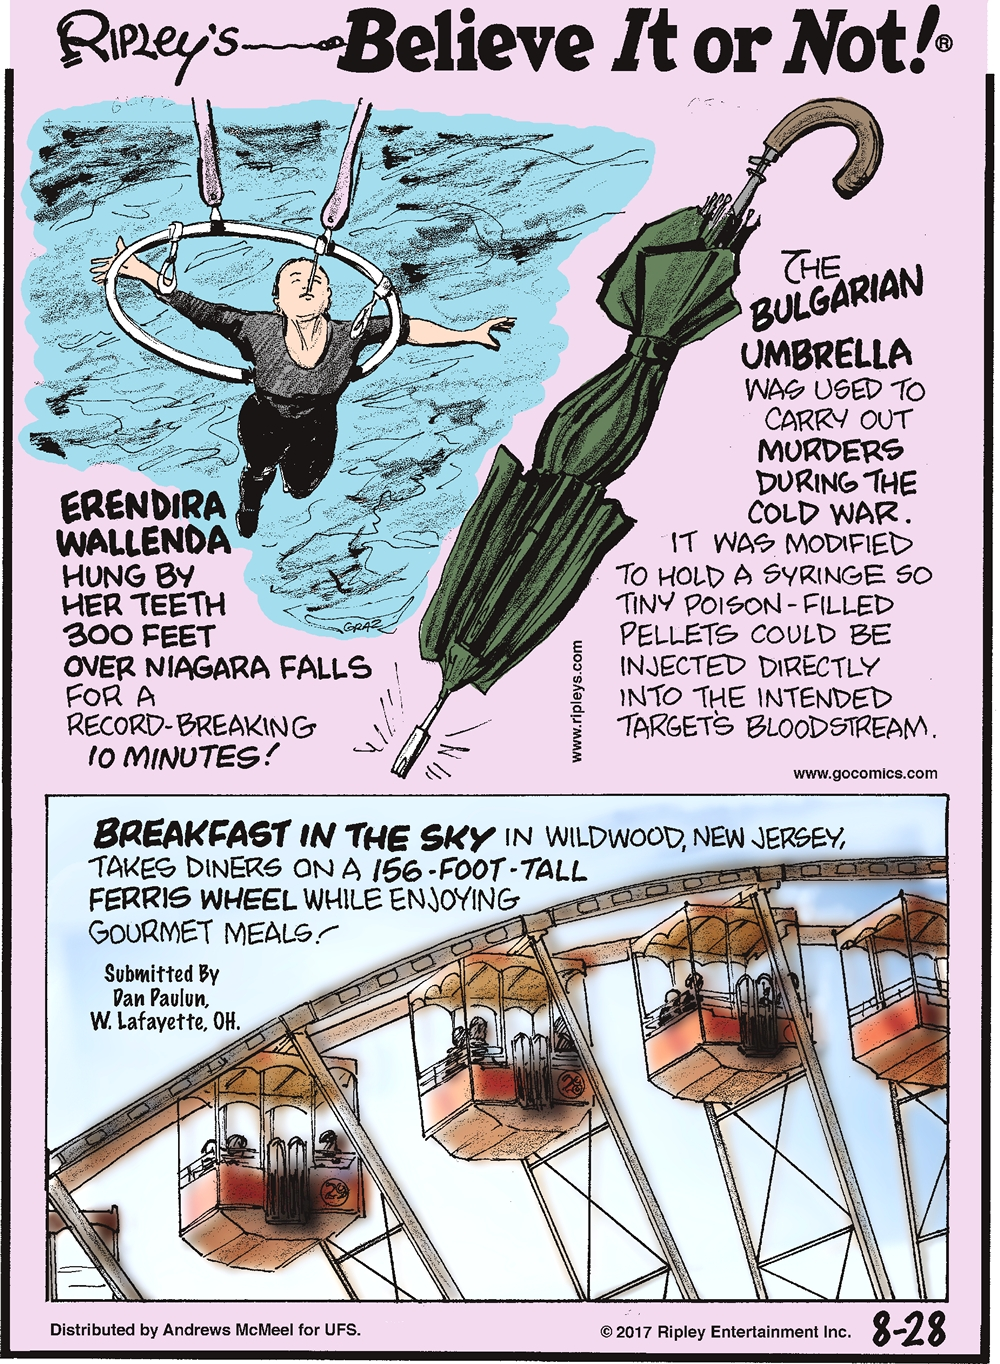 Erendira Wallenda hung by her teeth 300 feet over Niagara Falls for a record-breaking 10 minutes!-------------------- The Bulgarian Umbrella was used to carry out murders during the Cold War. It was modified to hold a syringe so tiny poison-filled pellets could be injected directly into the intended target's bloodstream.-------------------- Breakfast in the Sky in Wildwood, New Jersey, takes diners on a 156-foot-tall Ferris Wheel while enjoying gourmet meals! Submitted by Dan Paulun, W. Lafayette, OH.